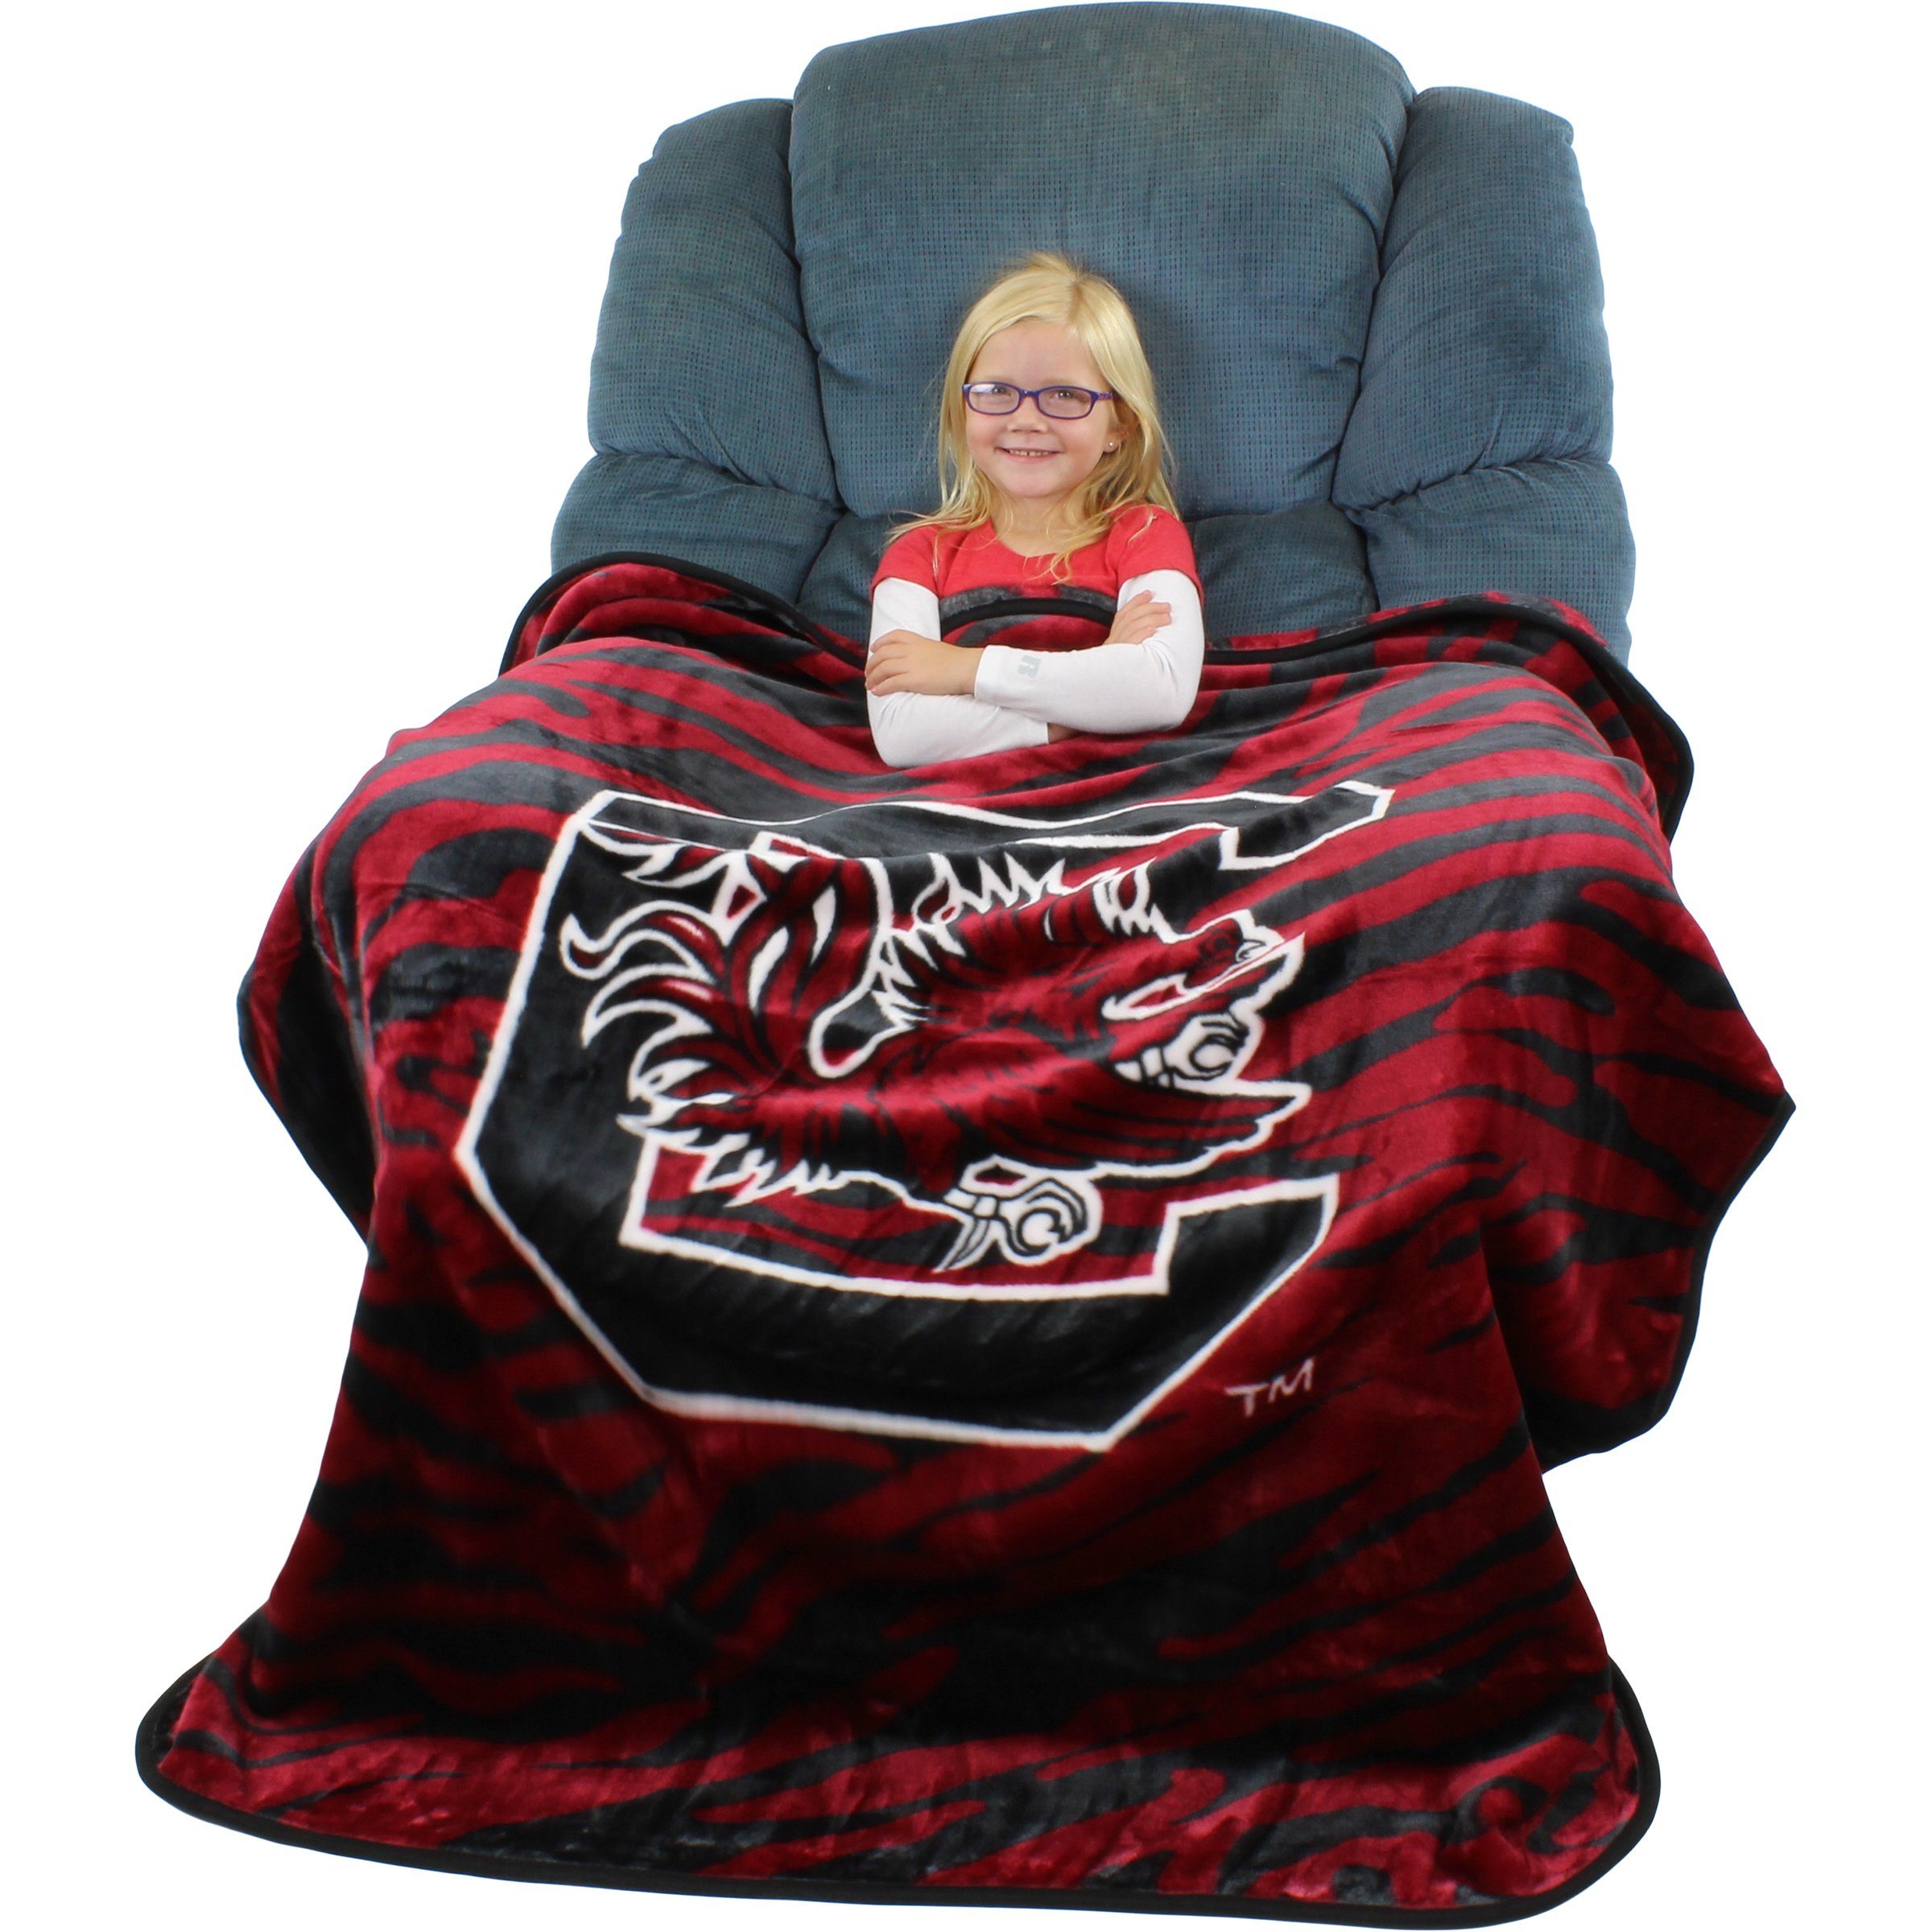 College Covers South Carolina Gamecocks Super Soft Raschel Throw Blanket, 50'' x 60''